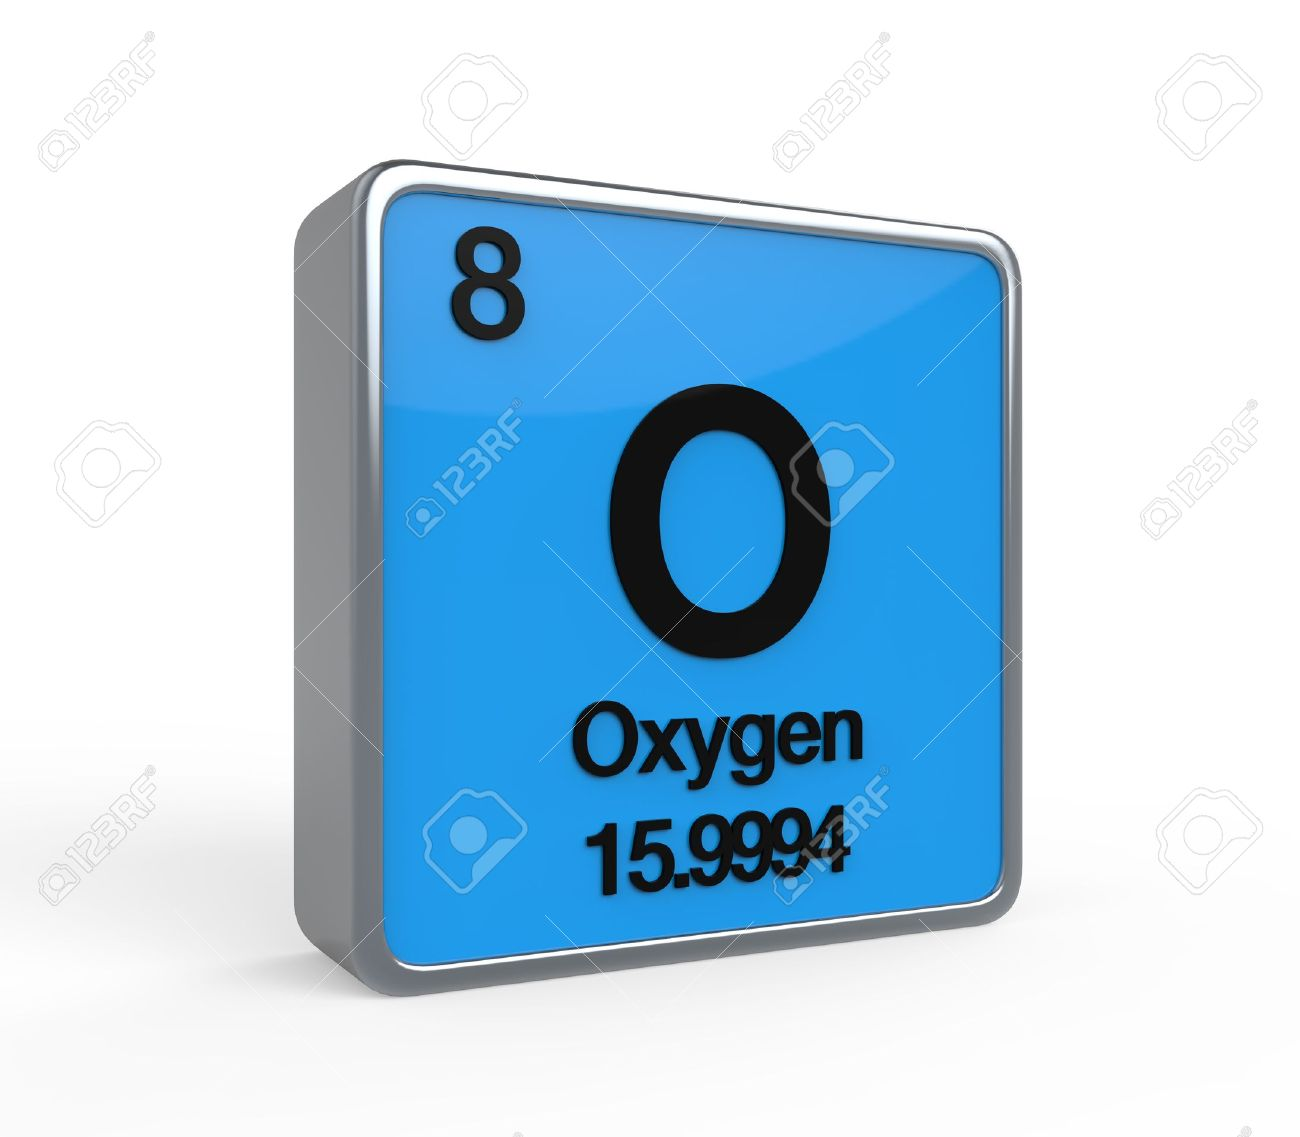 Oxygen element periodic table stock photo picture and royalty oxygen element periodic table stock photo 20429786 gamestrikefo Gallery